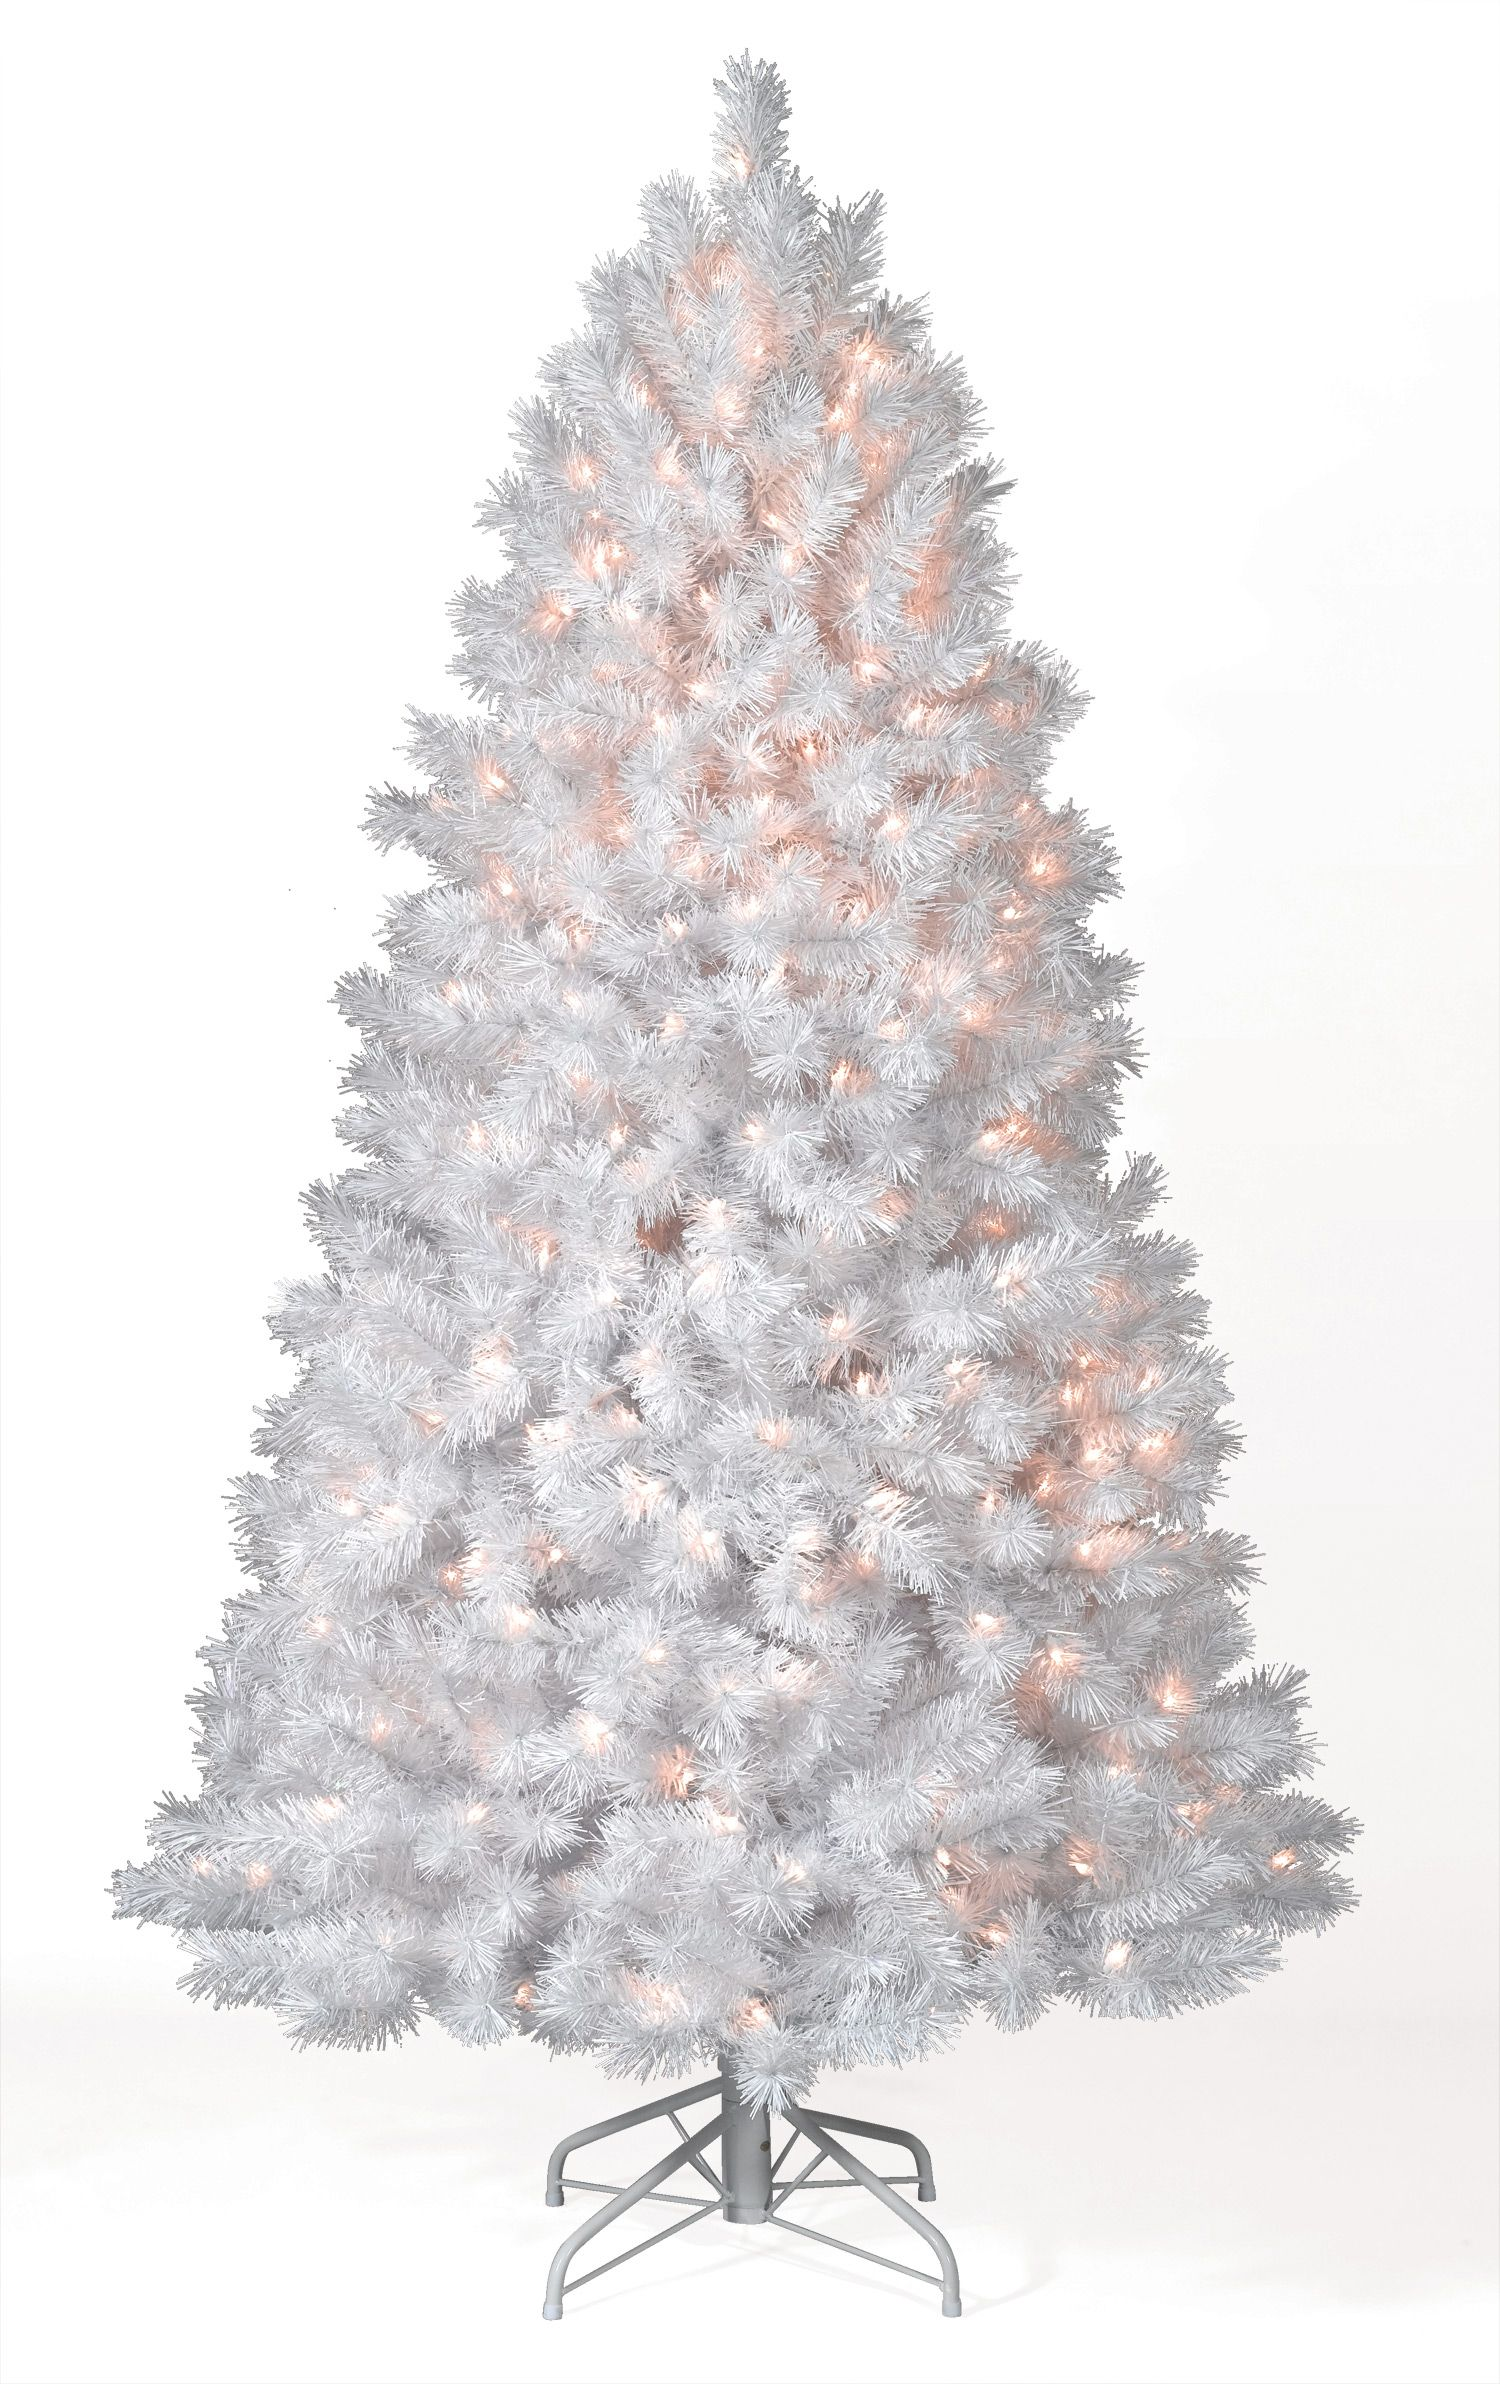 Lovely 8 Foot Shimmering White Artificial Christmas Trees With Multi Lights